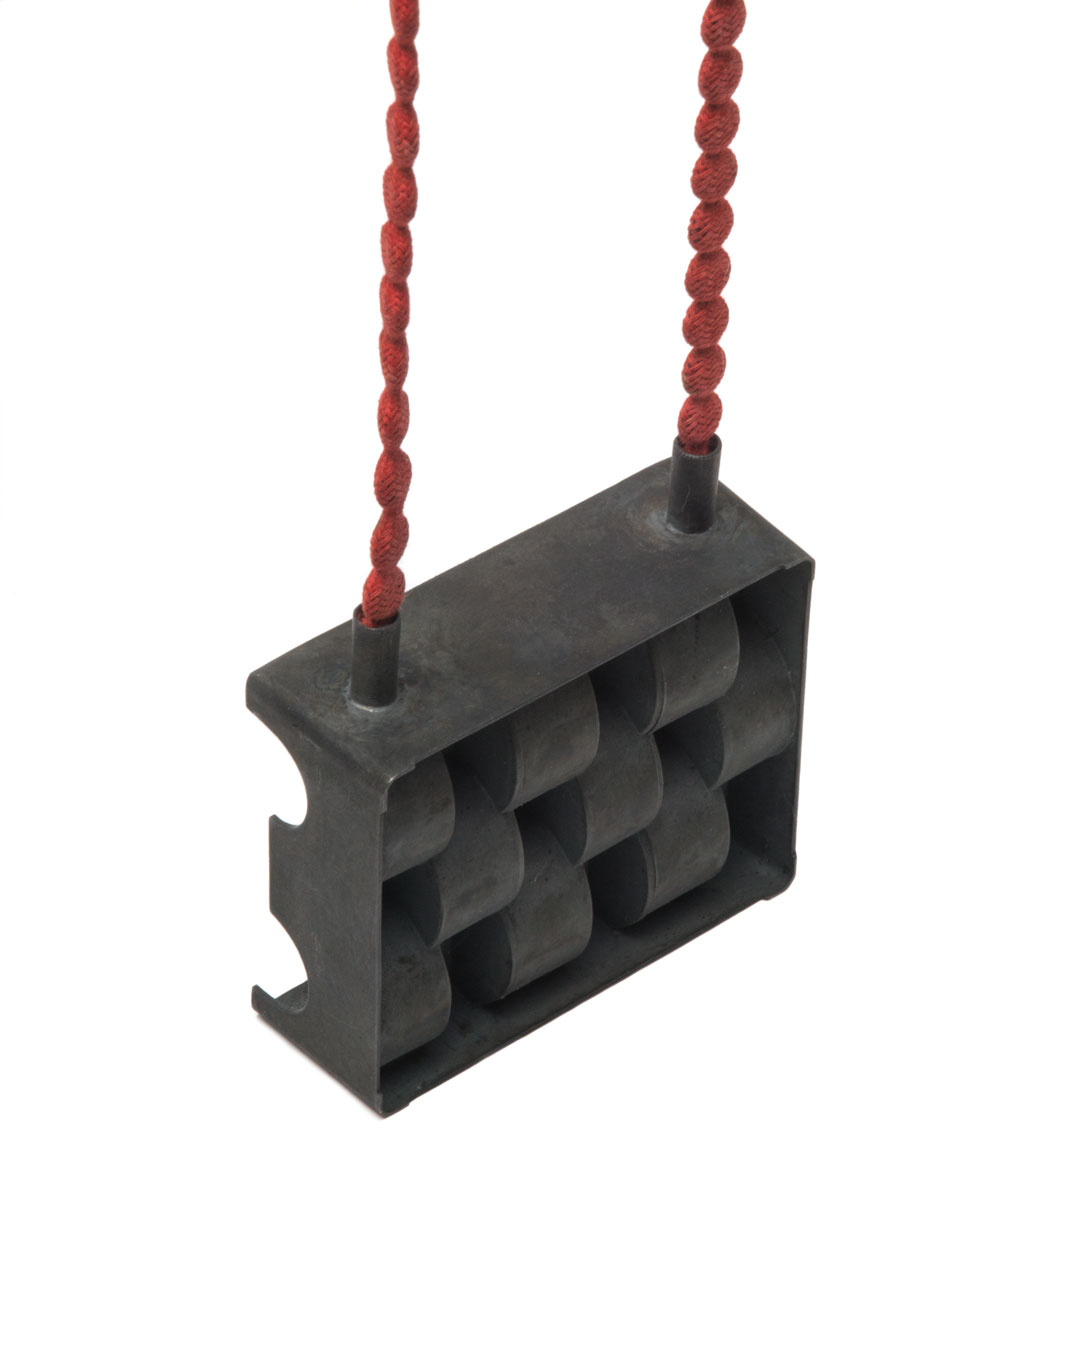 Winfried Krüger, untitled, 2009, necklace; oxidised silver, lead strapping, textile, element 80 x 75 mm, €2920